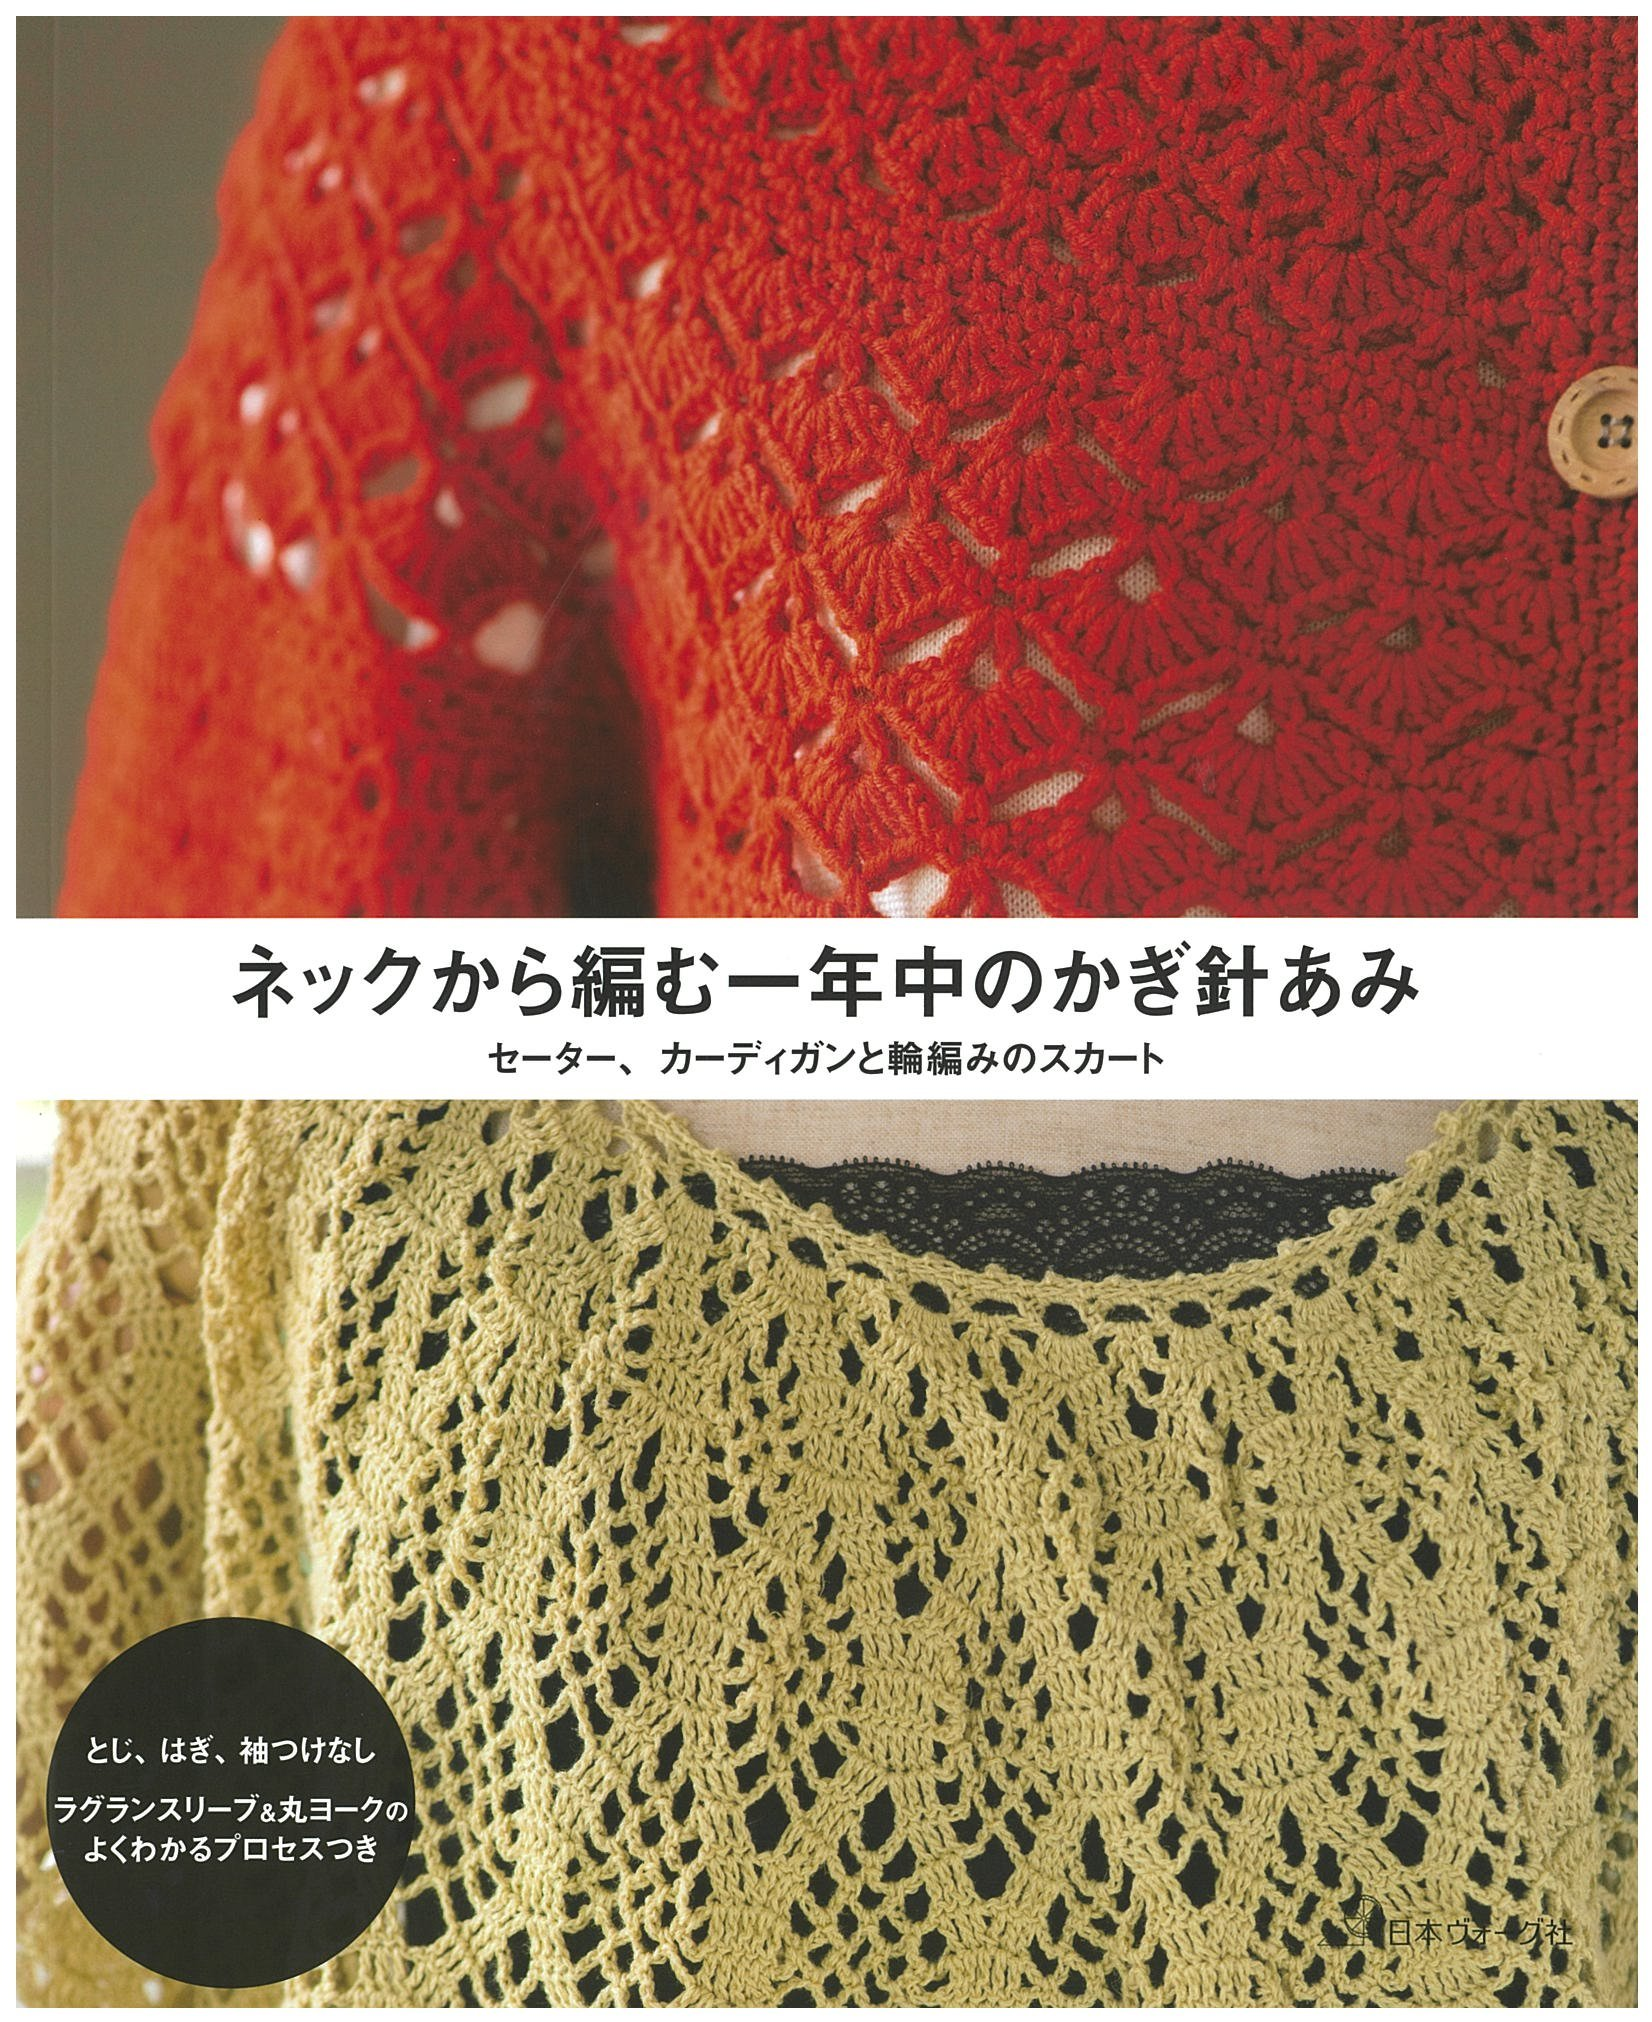 Year-round Crochet sweater knitting from the neck, skirt cardigan and Waami